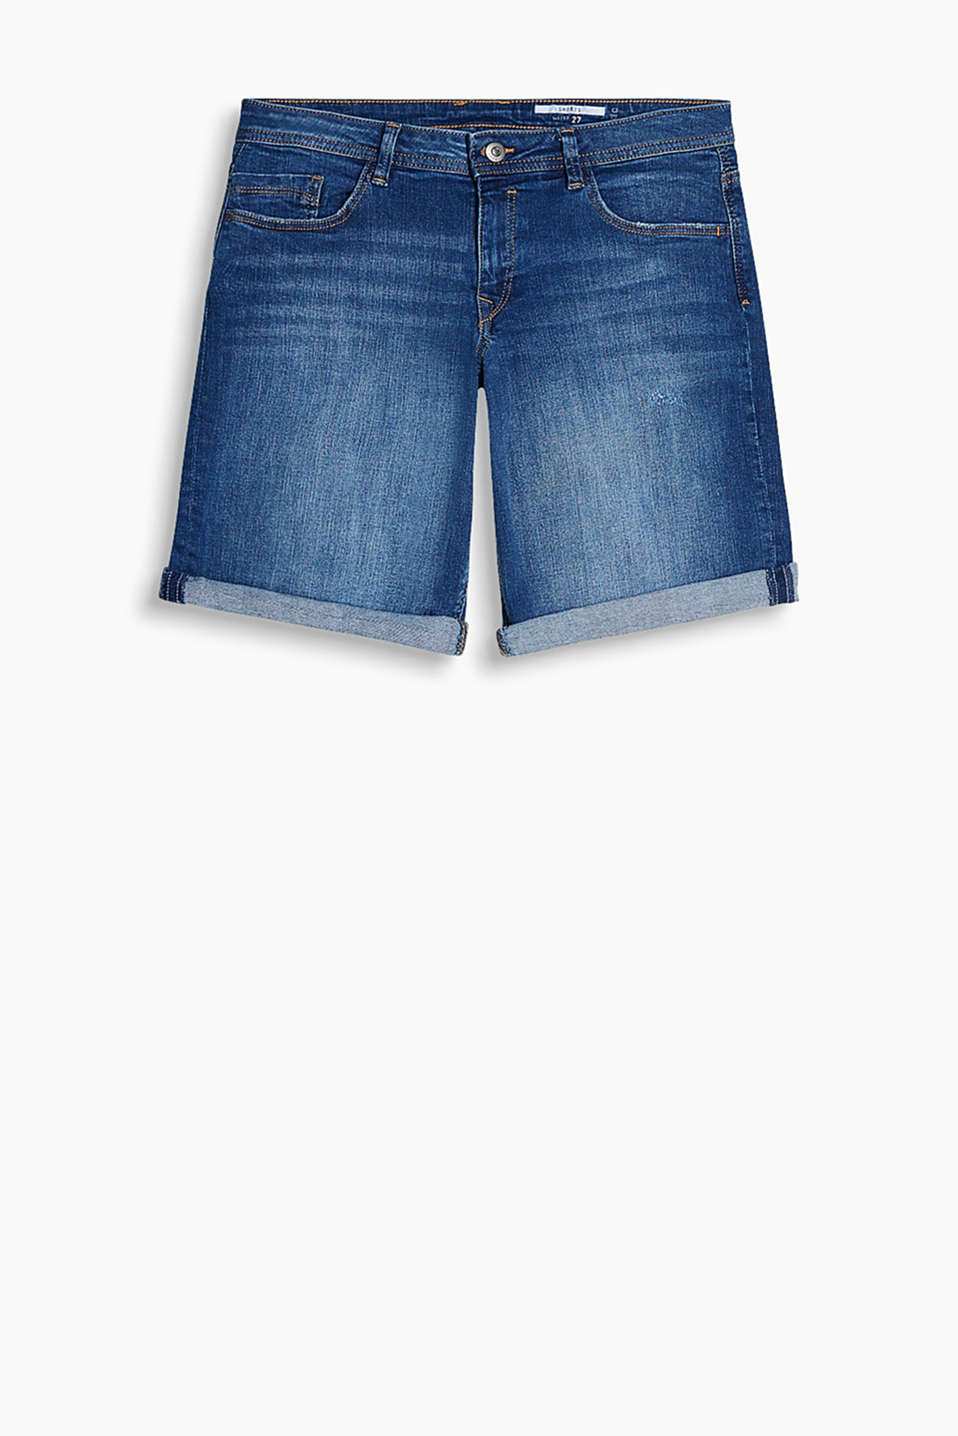 Denim Bermudas with distressed effects and stretch for comfort